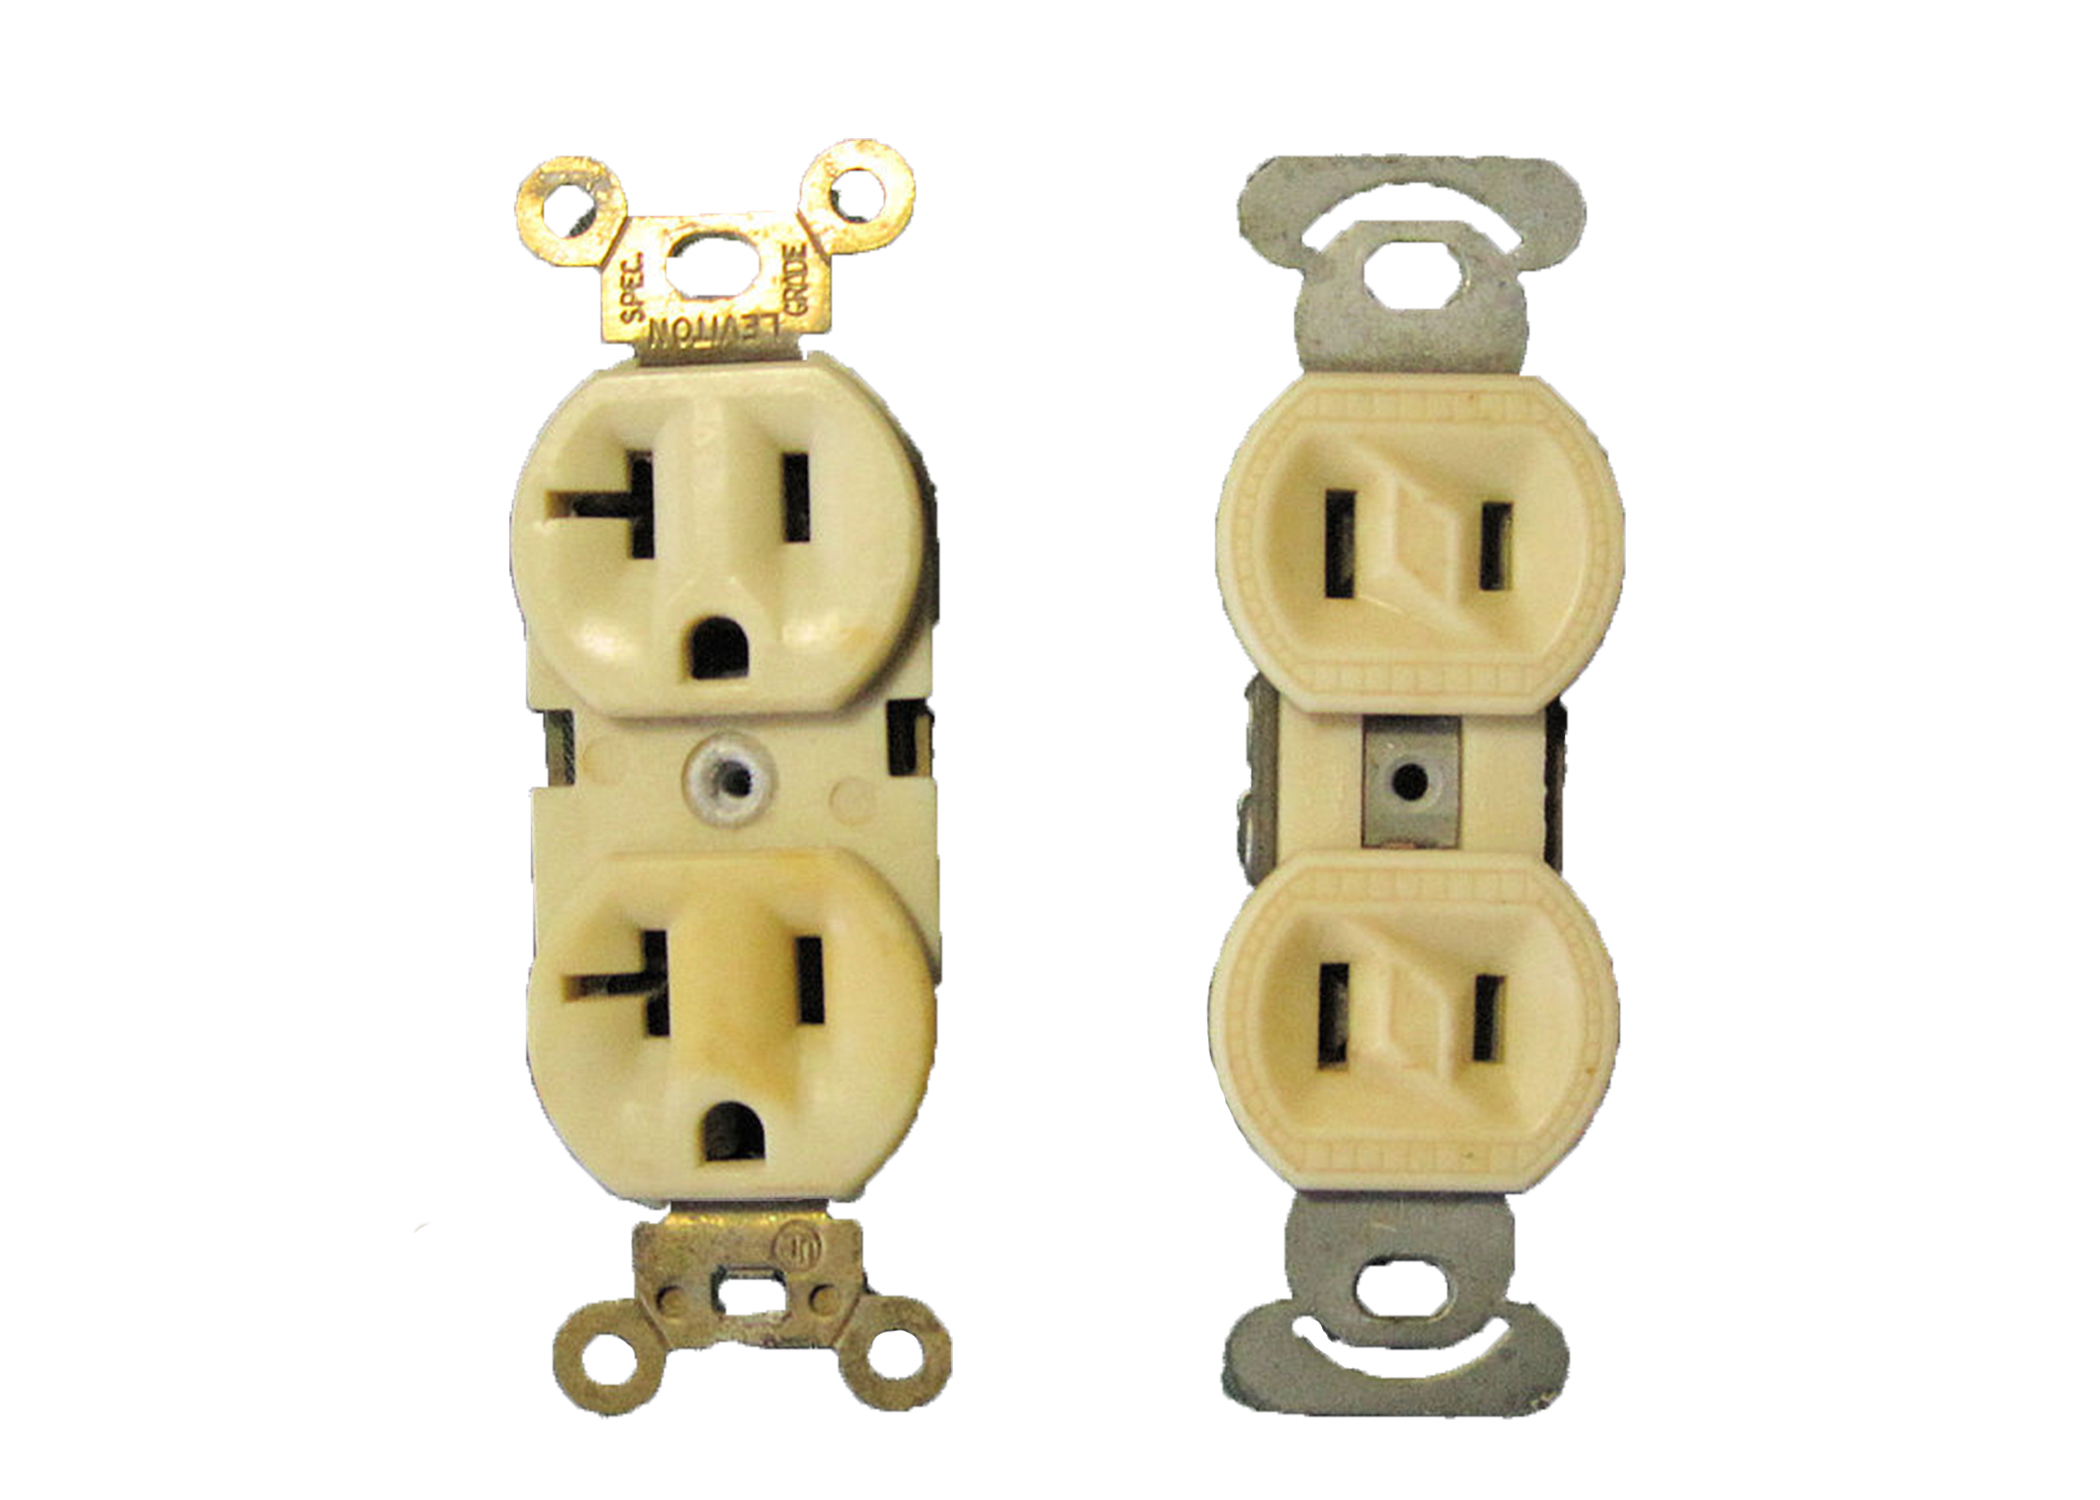 NEMA 1-15R Outlet vs. 5-15R Outlet